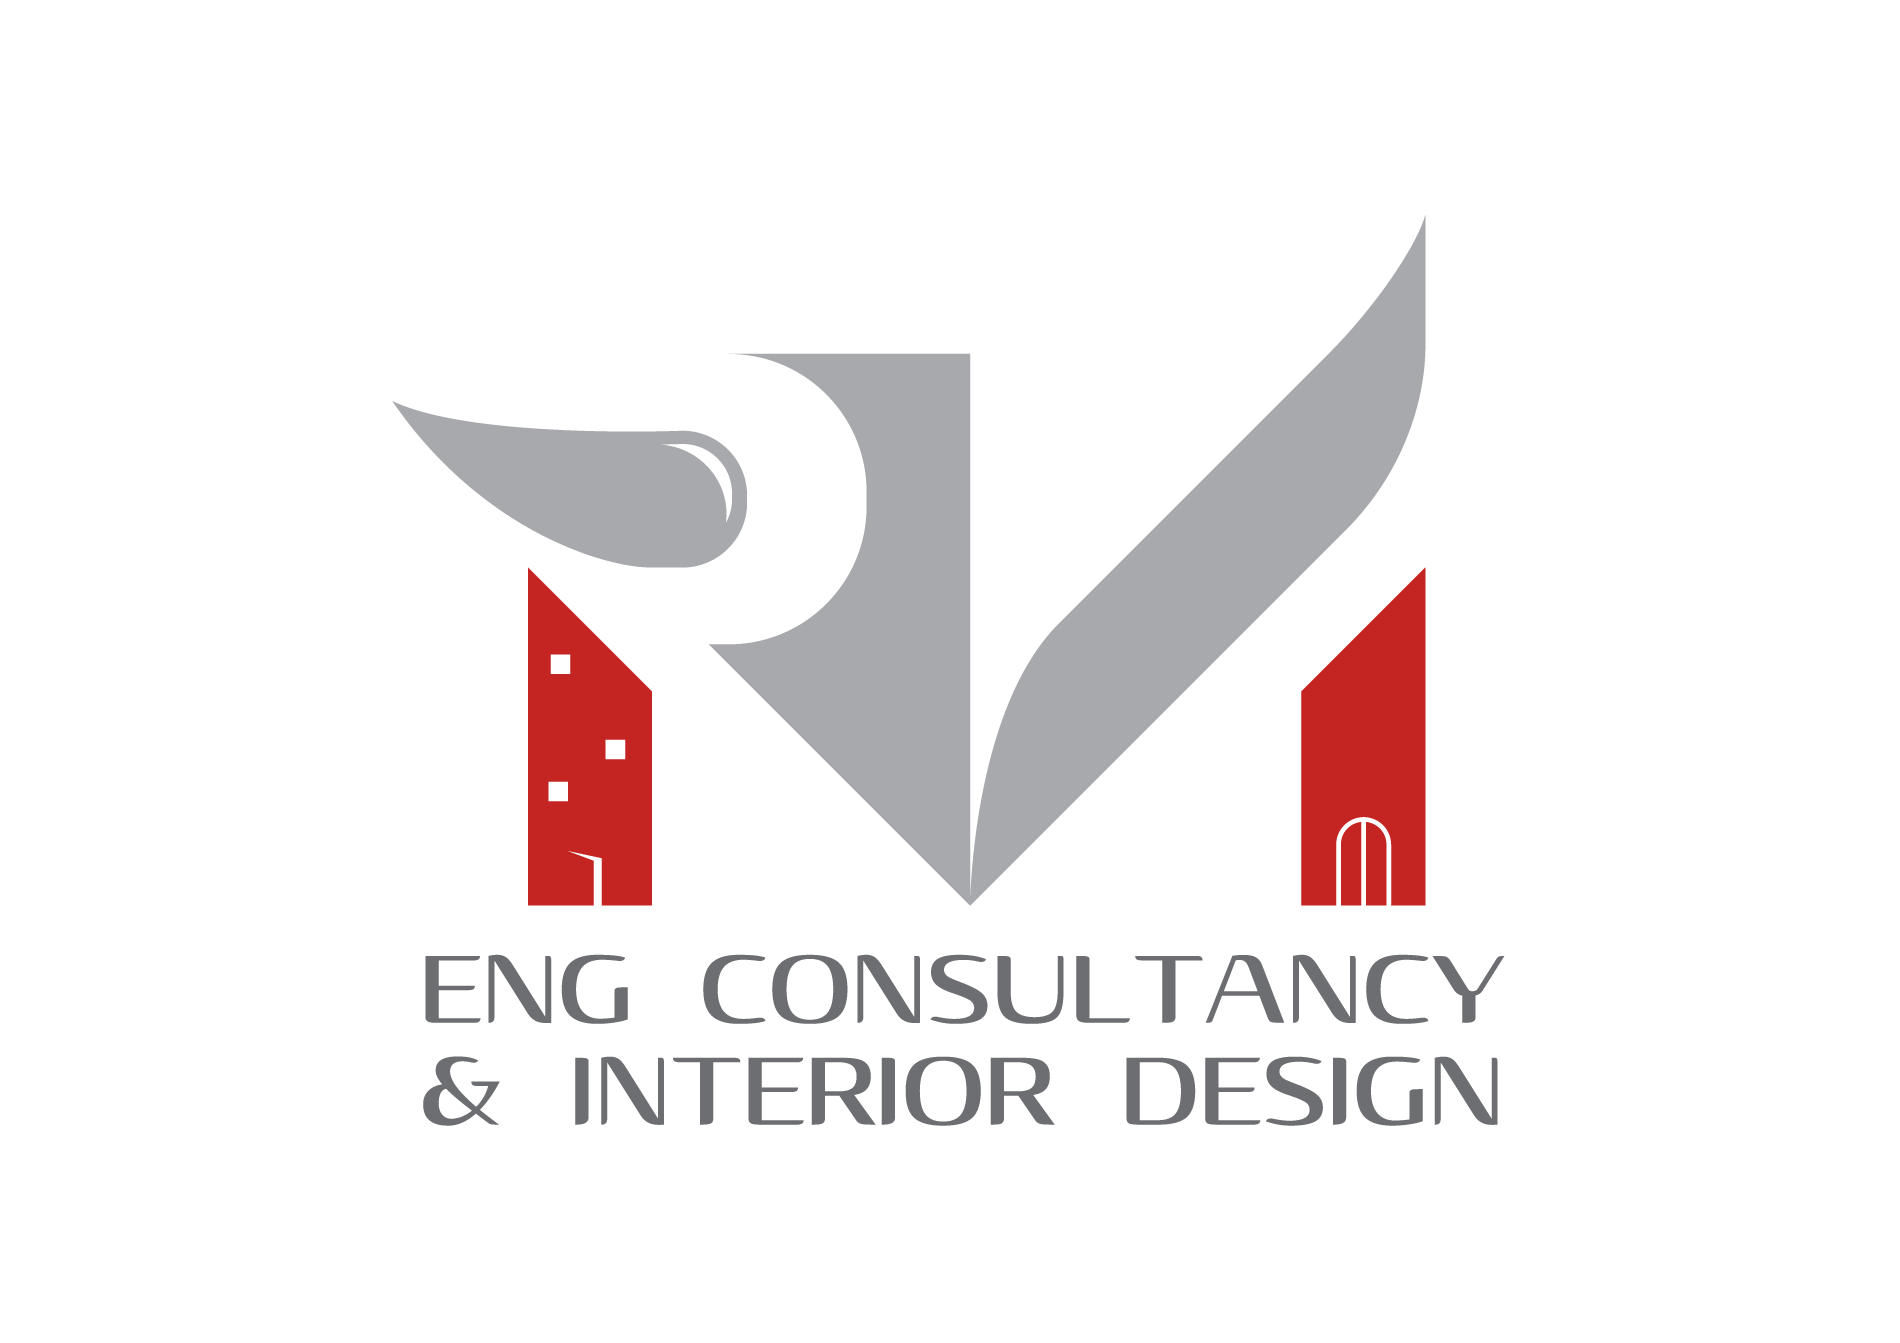 R.M engineering consultancy & interior design